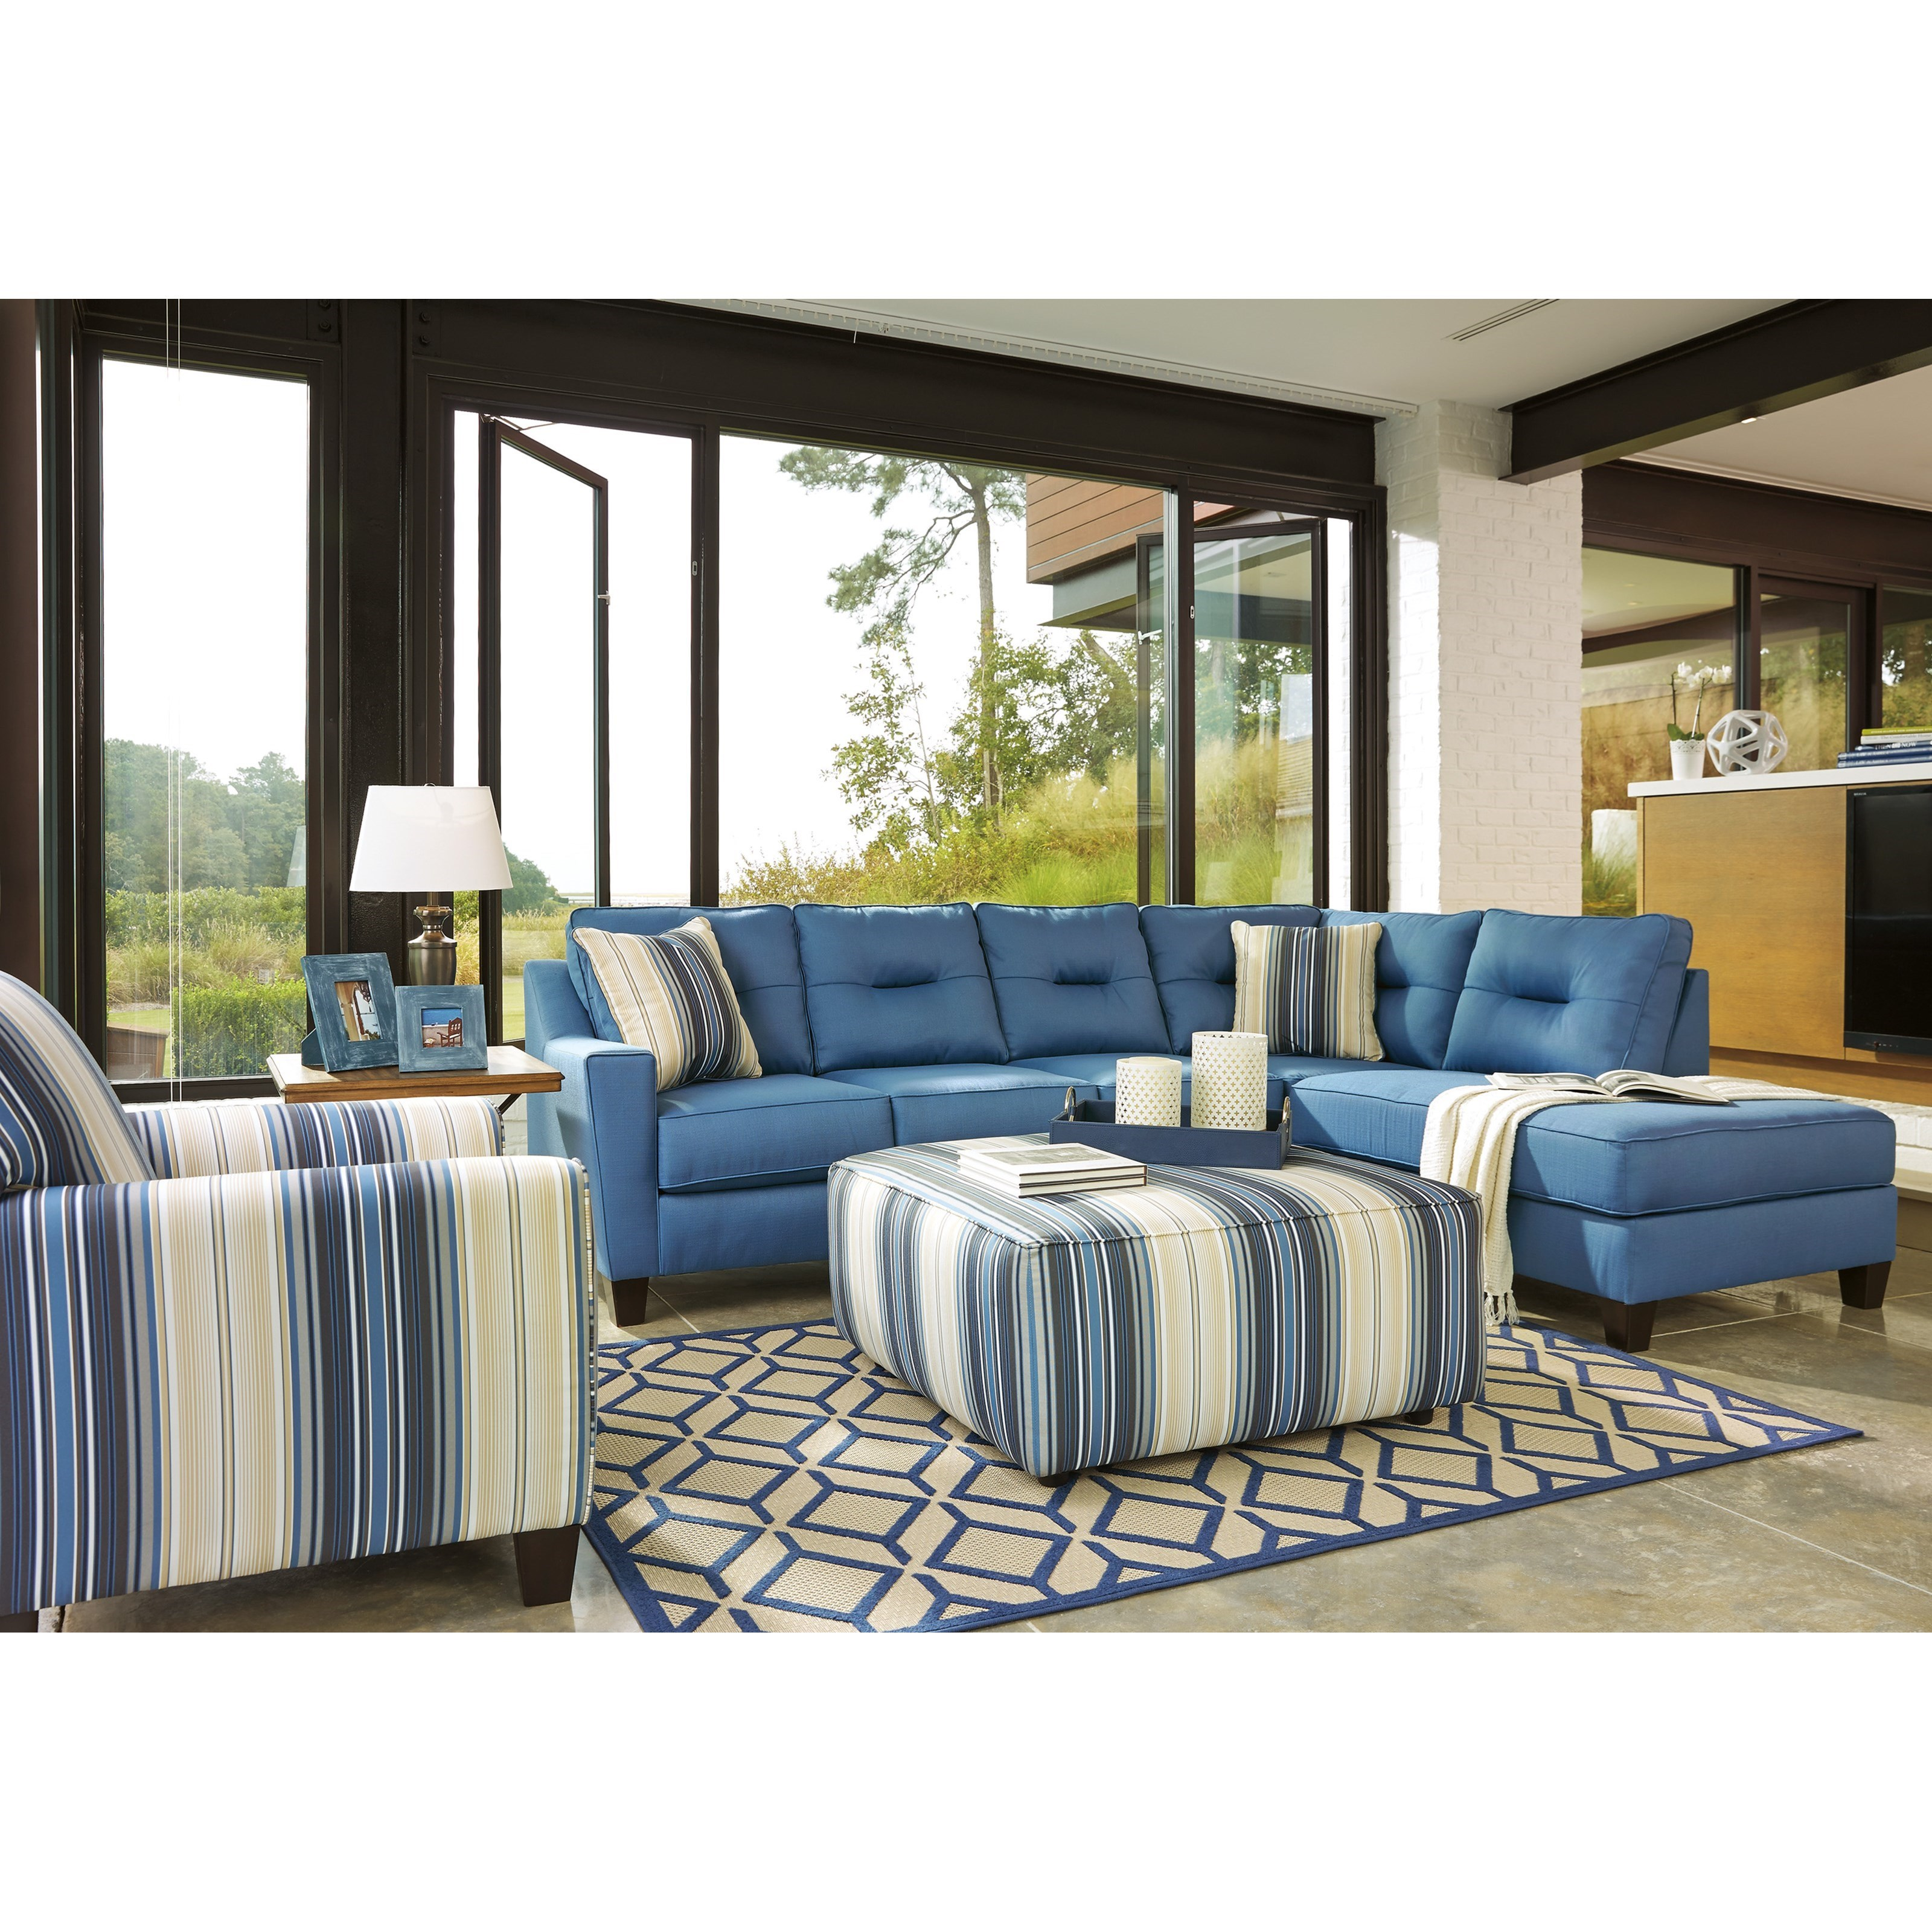 Benchcraft Kirwin Nuvella Stationary Living Room Group - Item Number: 99603 Living Room Group 4